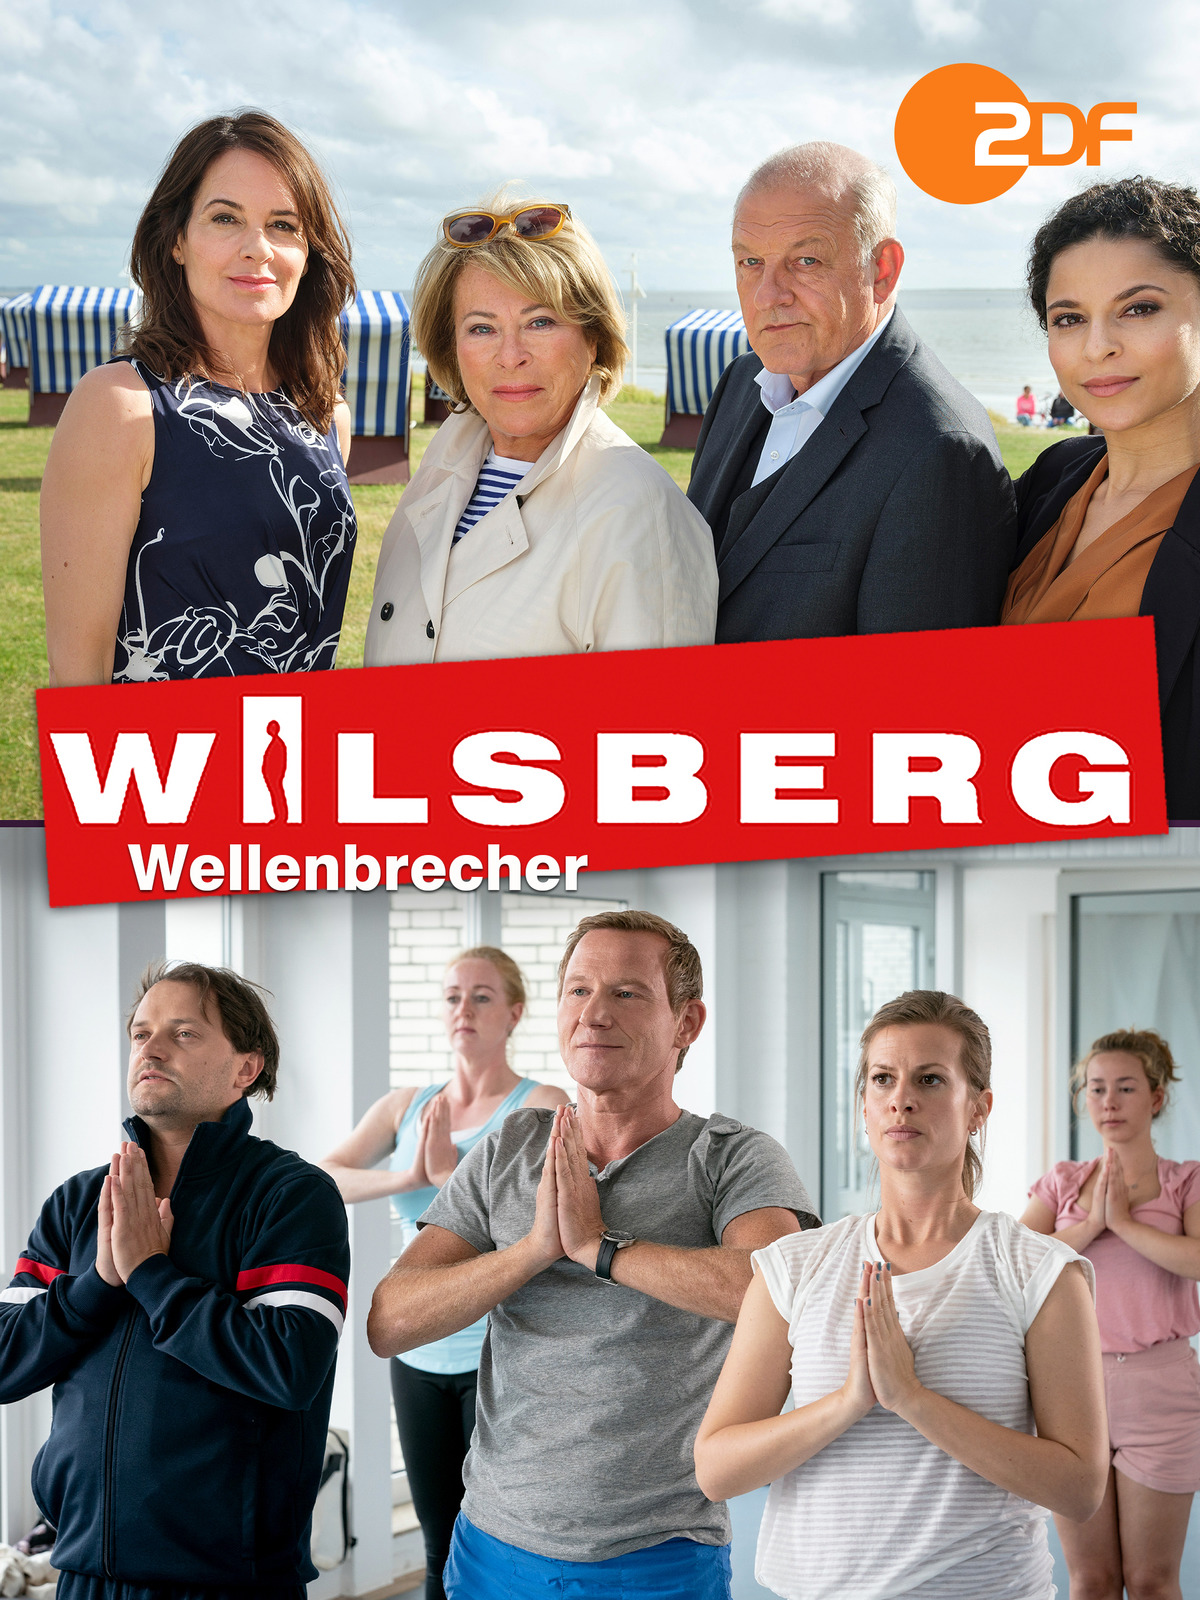 Wilsberg - Wellenbrecher